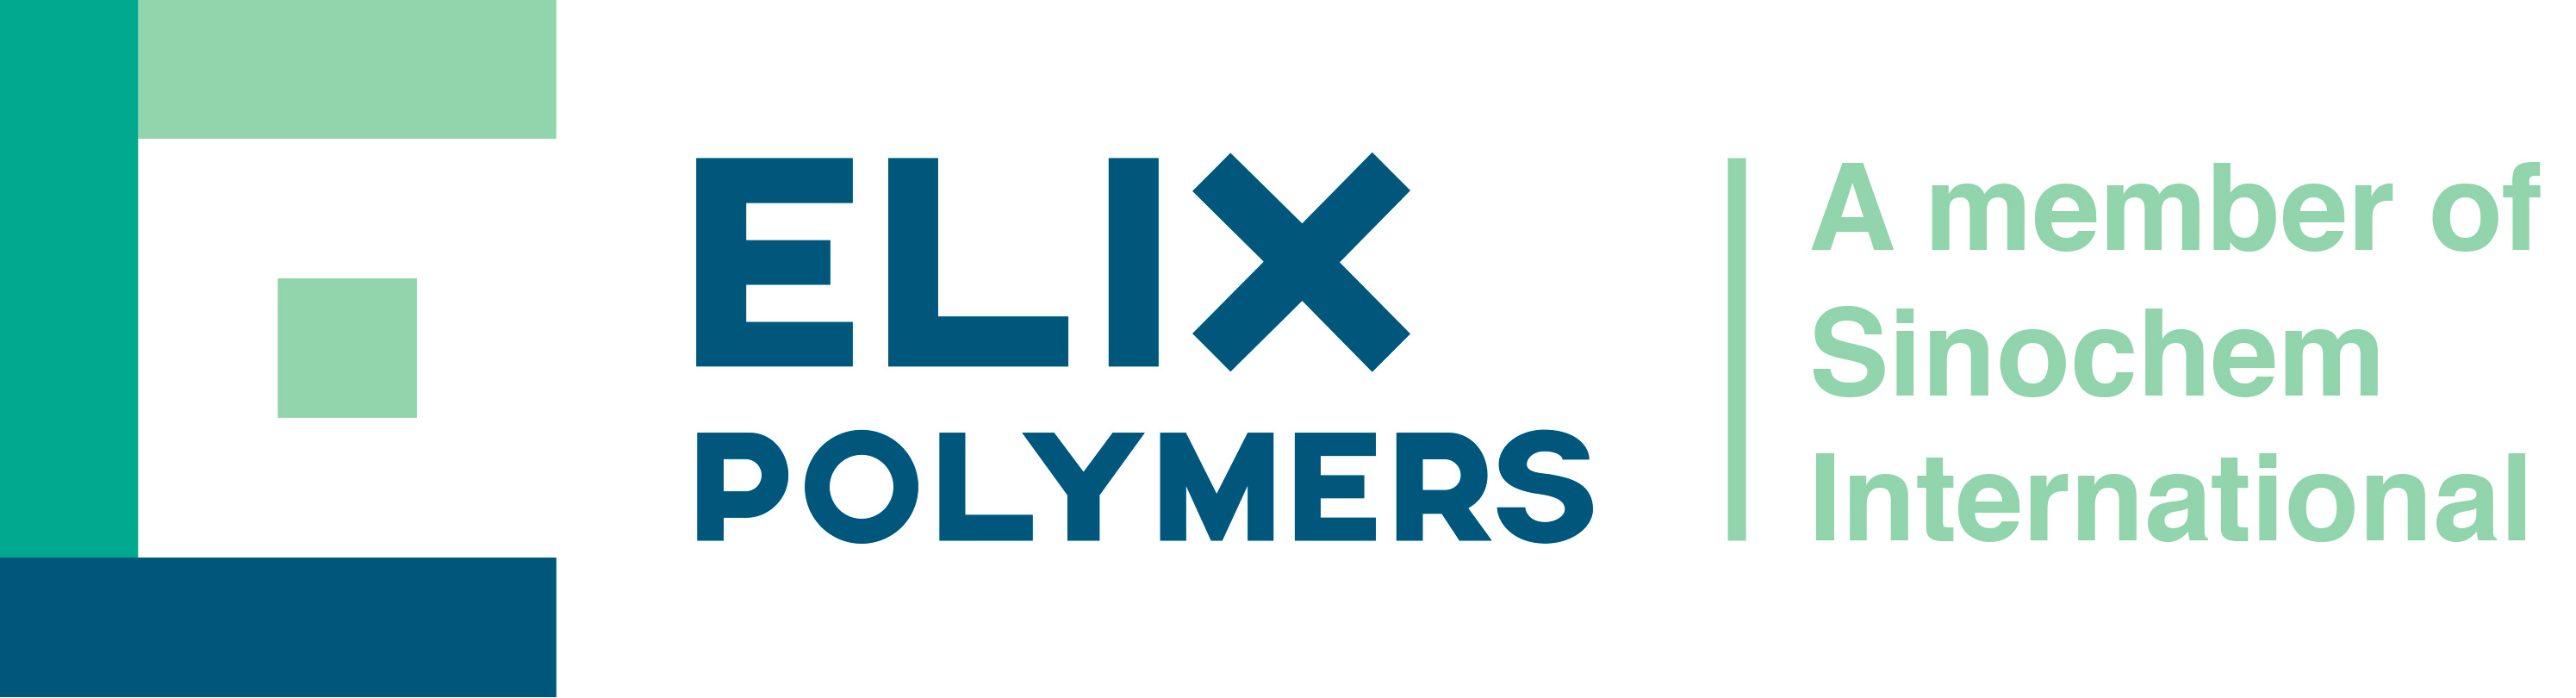 affiliate Sun European Partners, LLP completes sale investment ELIX Polymers Sinochem International